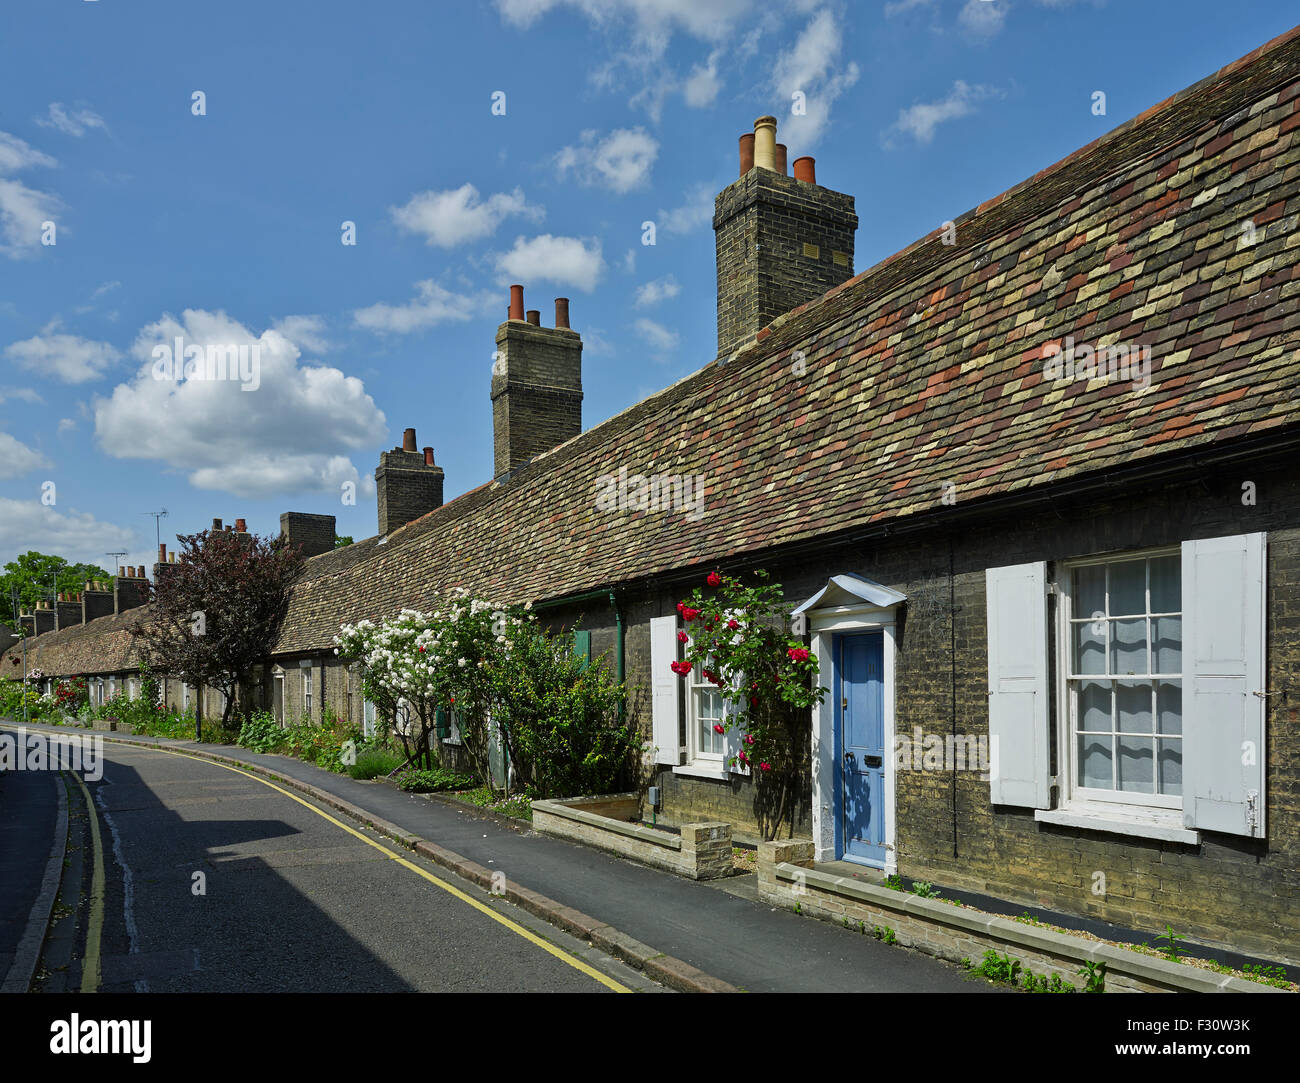 Cambridge, Orchard Street, c. 1825 curving terrace of cottages with deep mansard storey of hanging tiles. - Stock Image